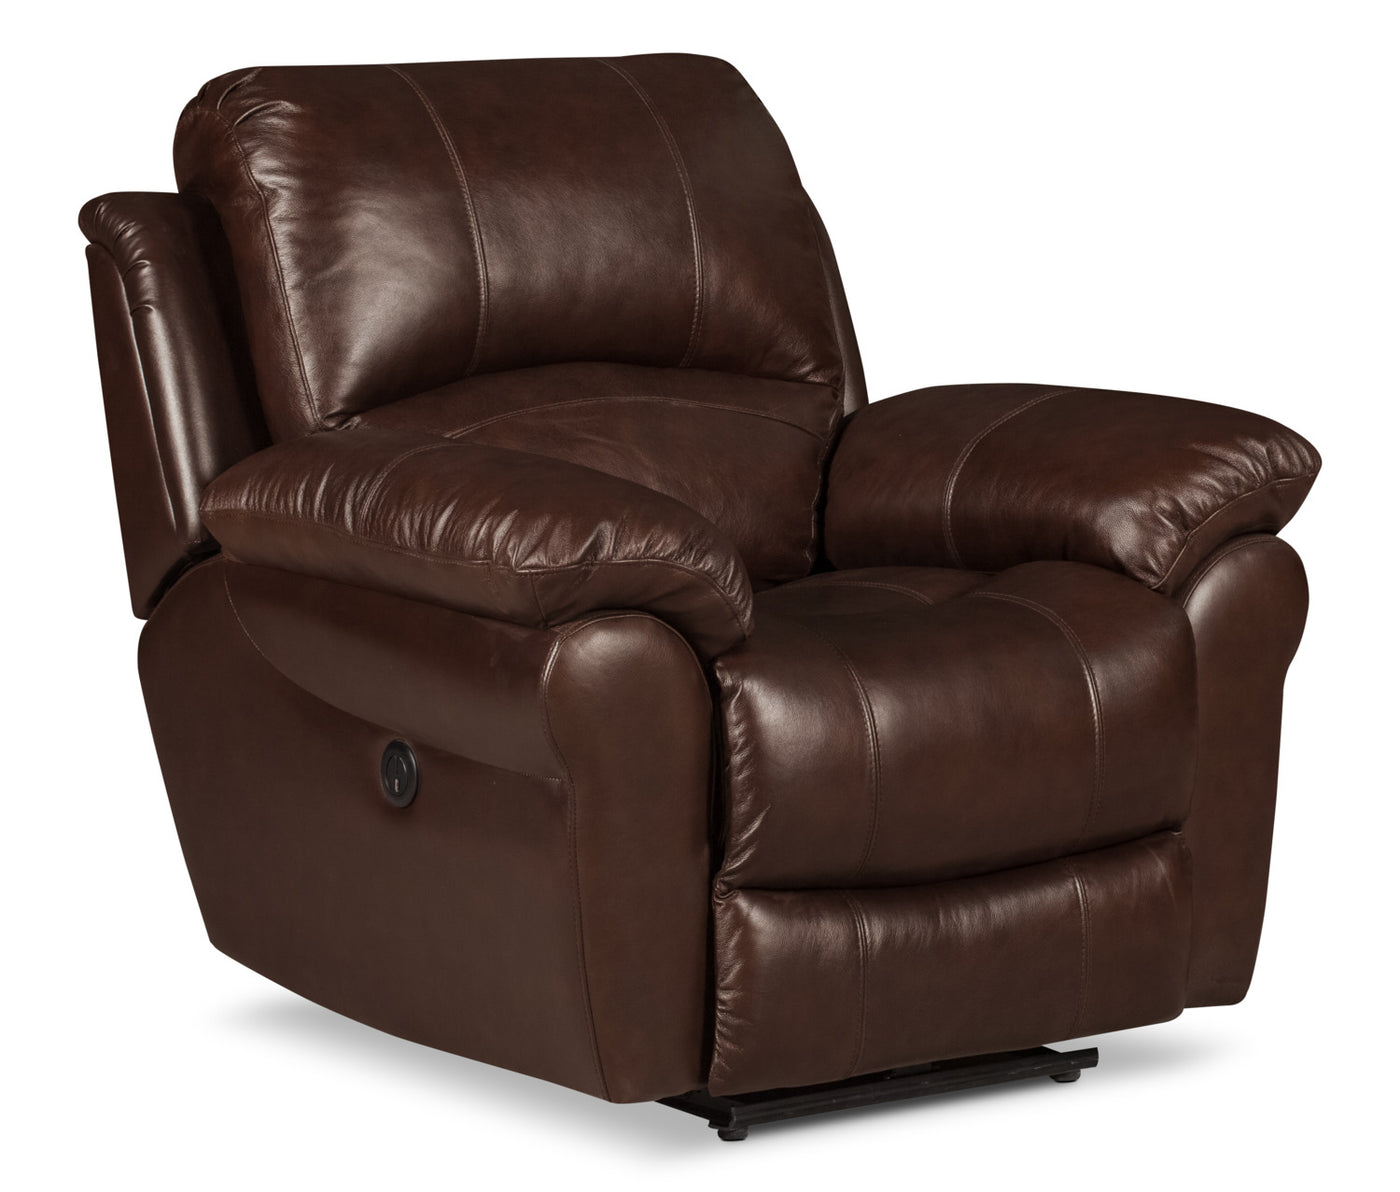 Excellent Kobe Genuine Leather Power Reclining Chair Brown Caraccident5 Cool Chair Designs And Ideas Caraccident5Info